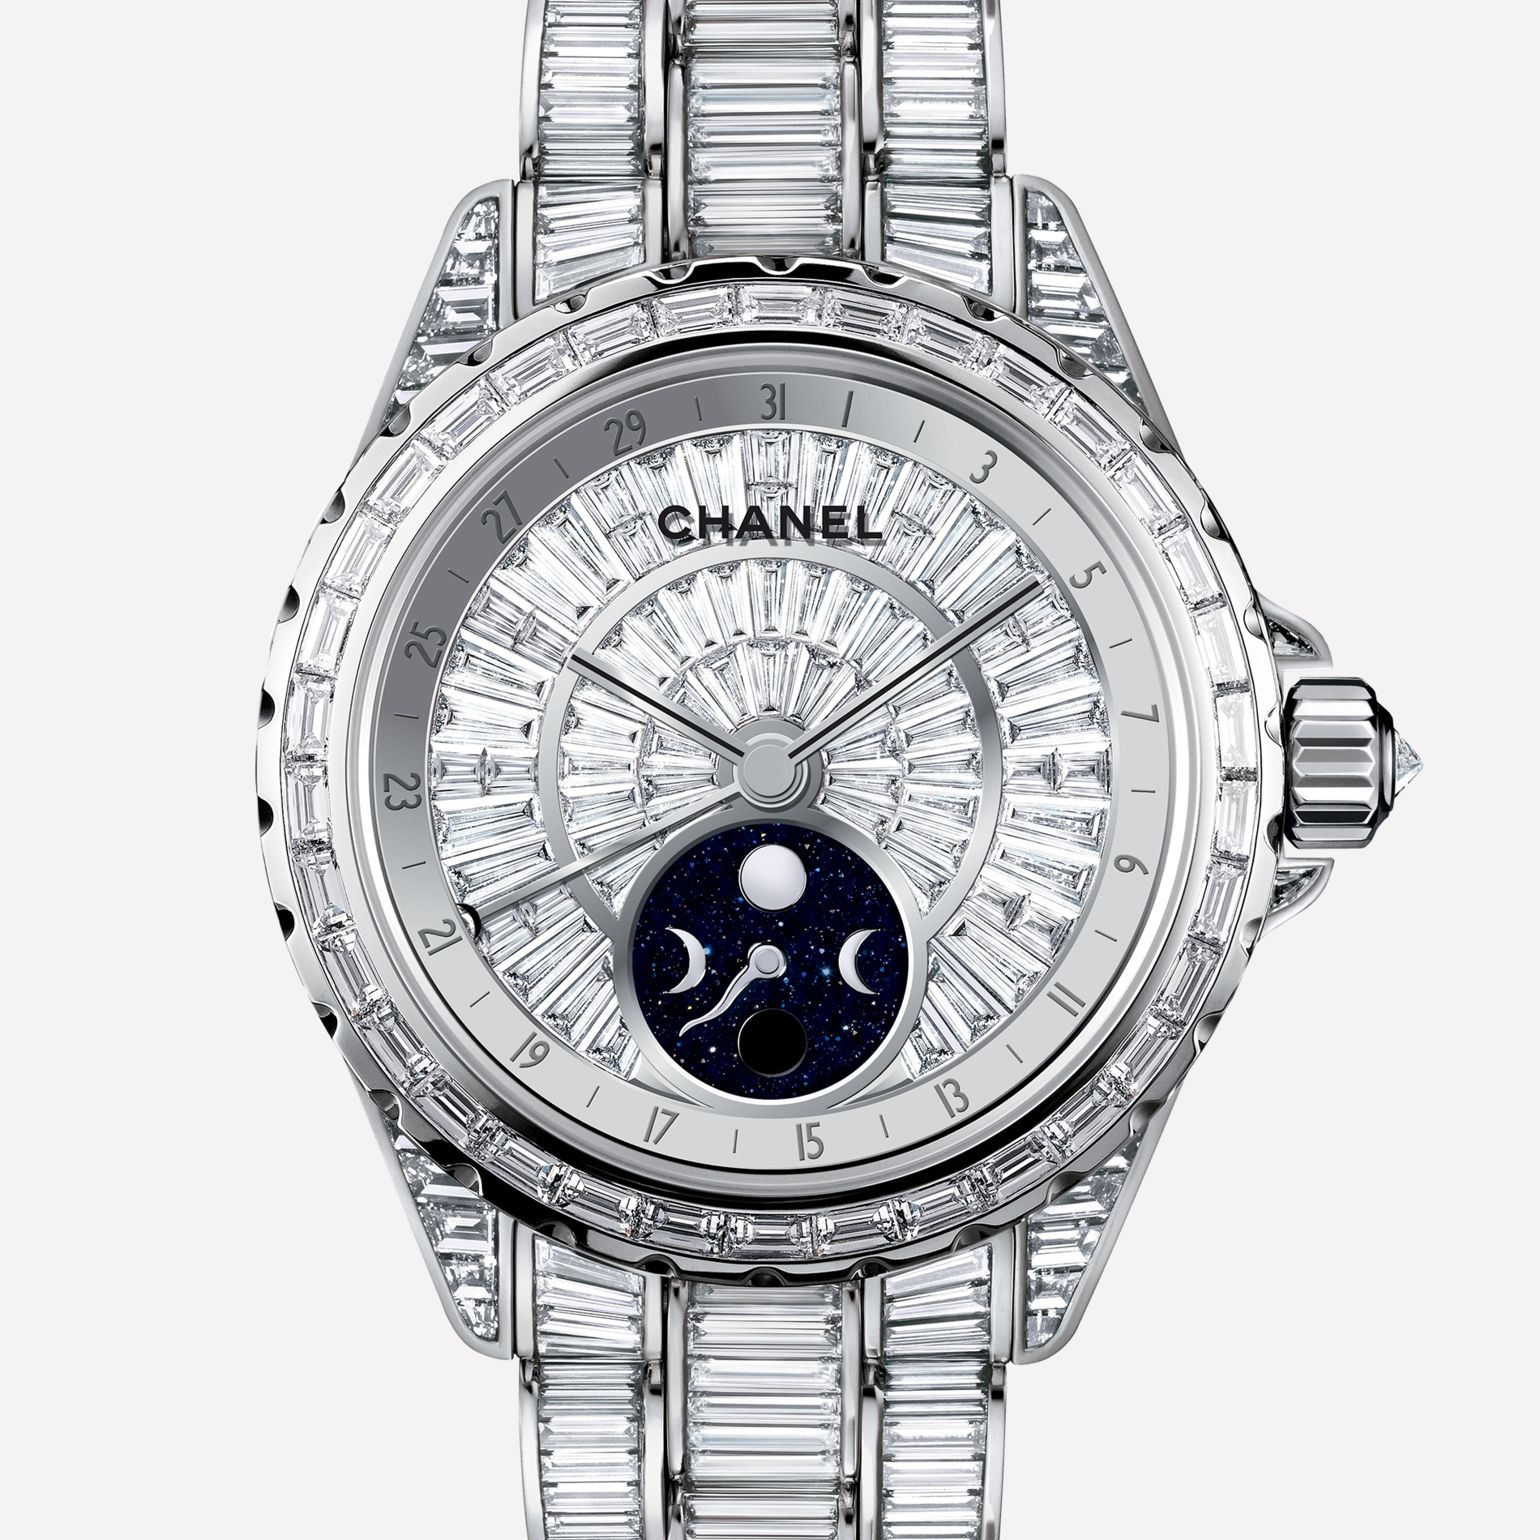 J12 High Jewelry Watch Moon phase, white gold, case, dial, bezel, and bracelet set with baguette-cut diamonds